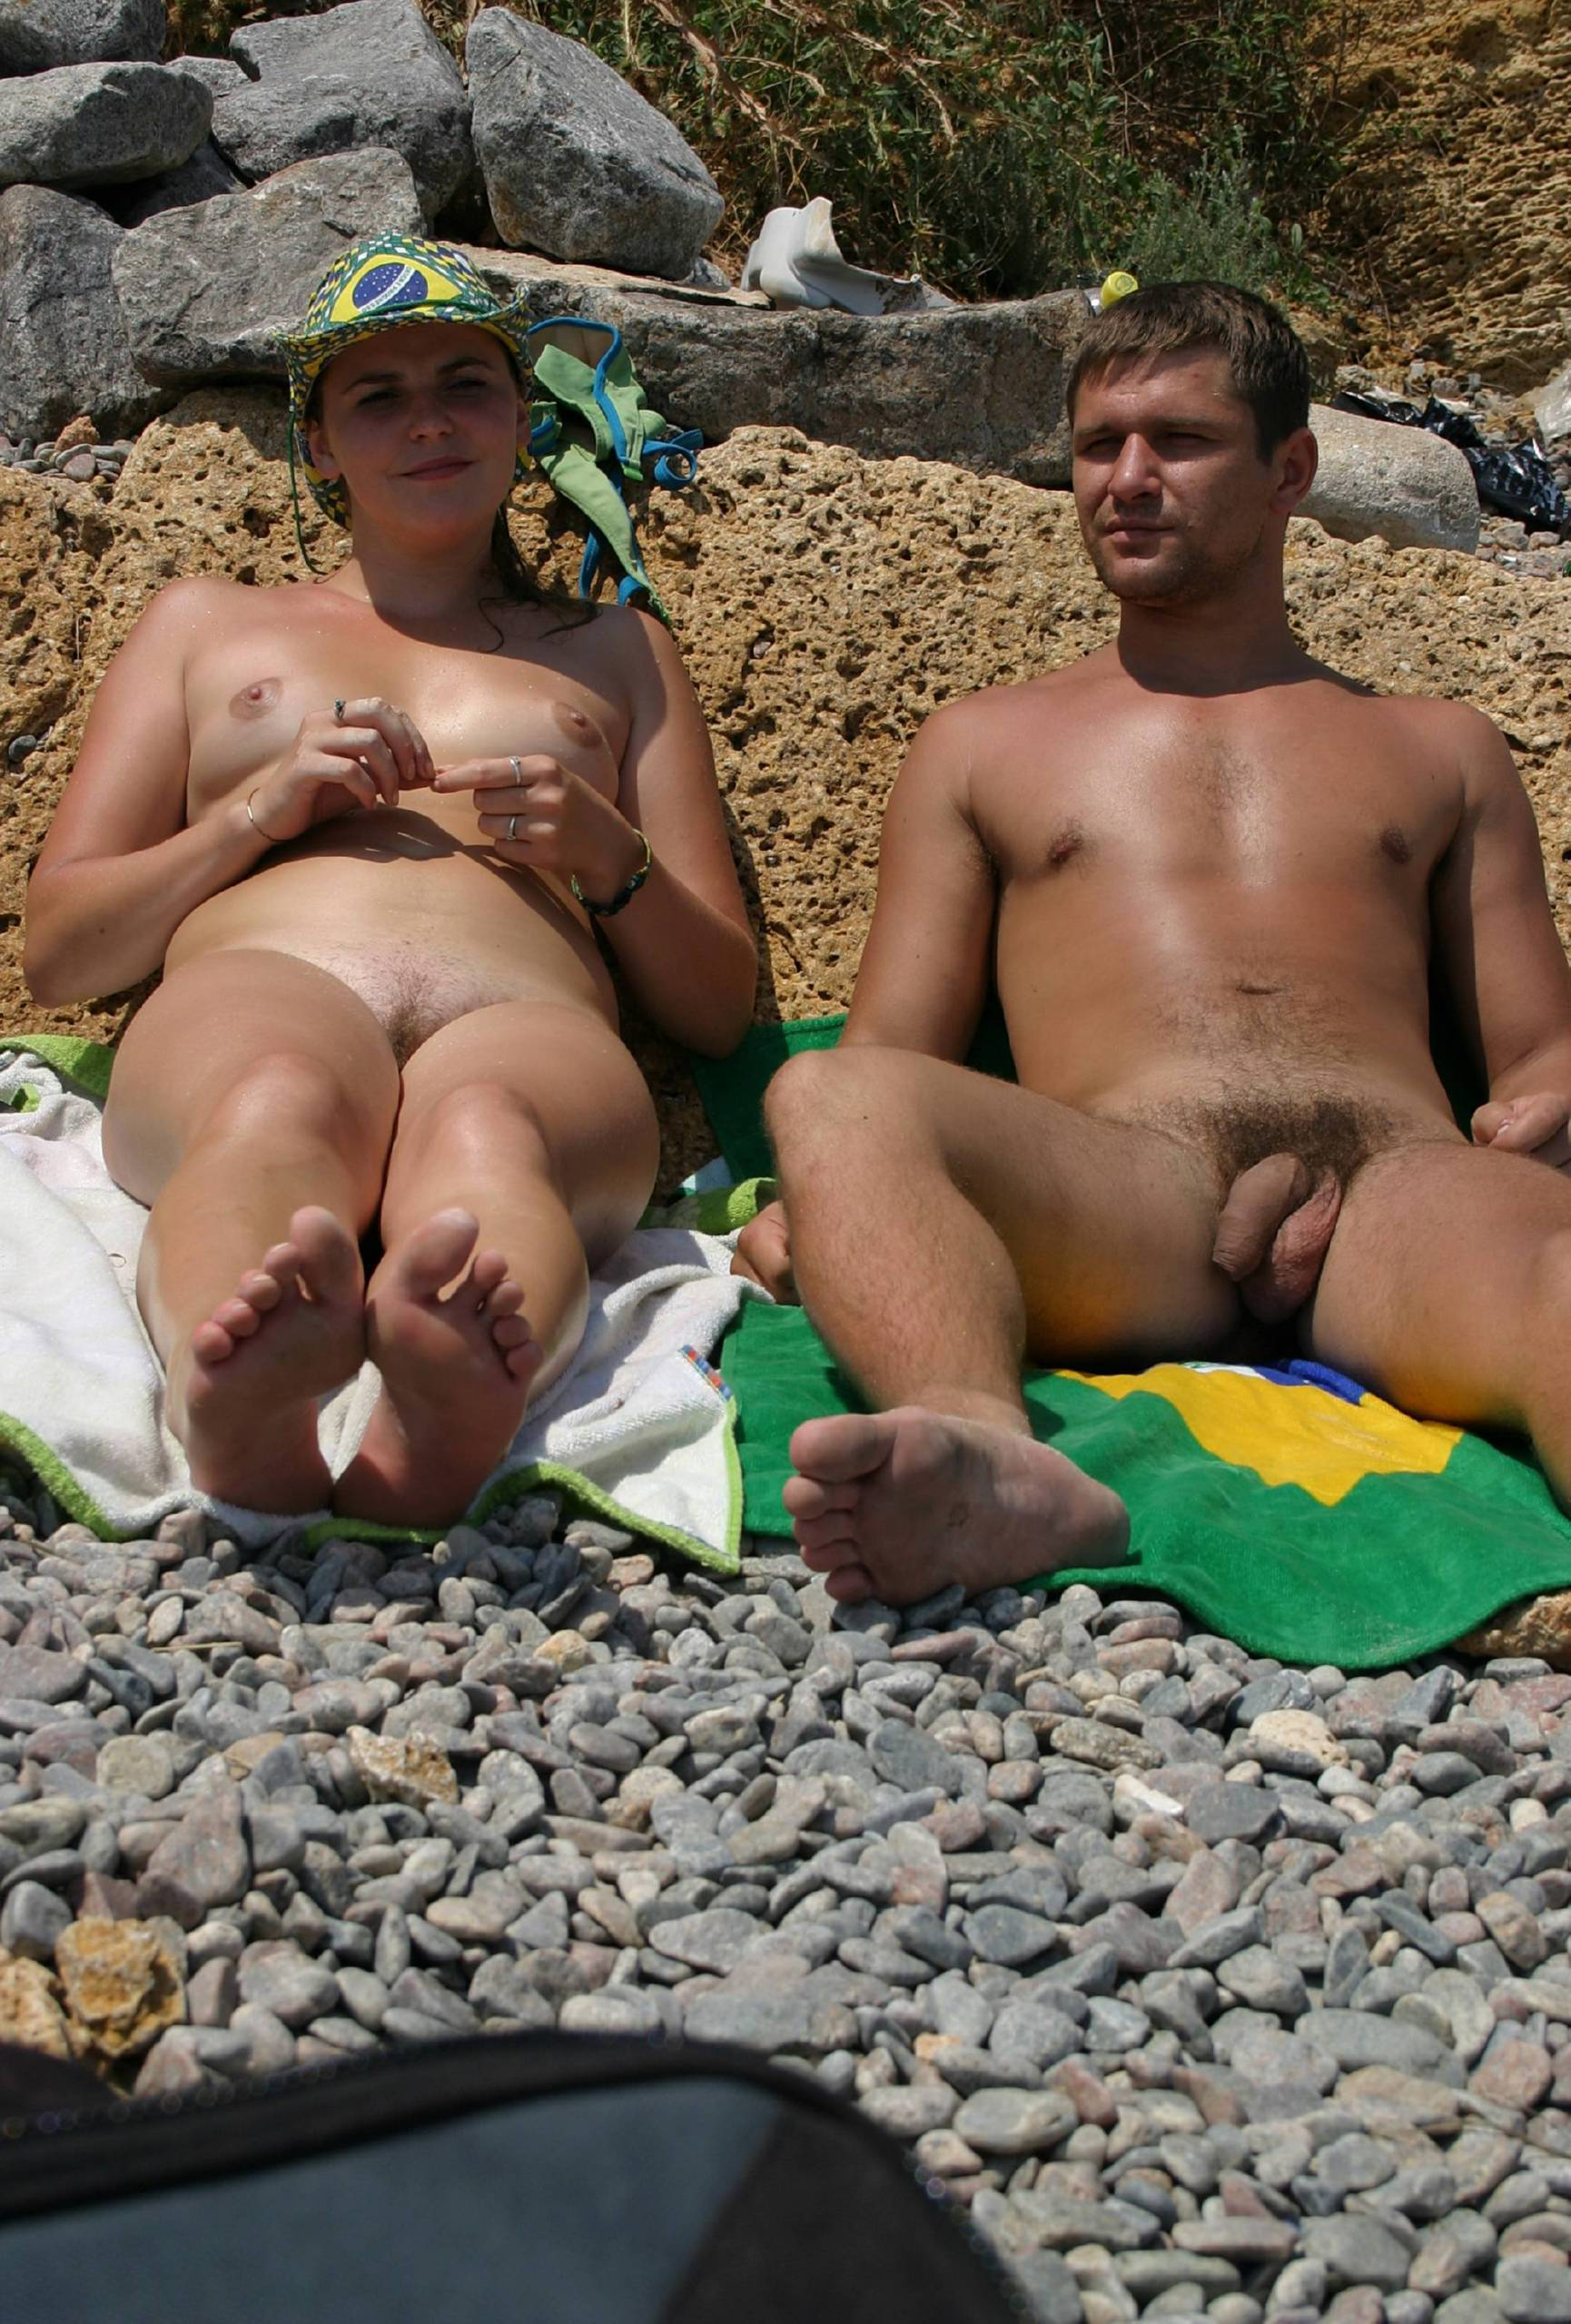 Nudist Shore and Mountains - 1